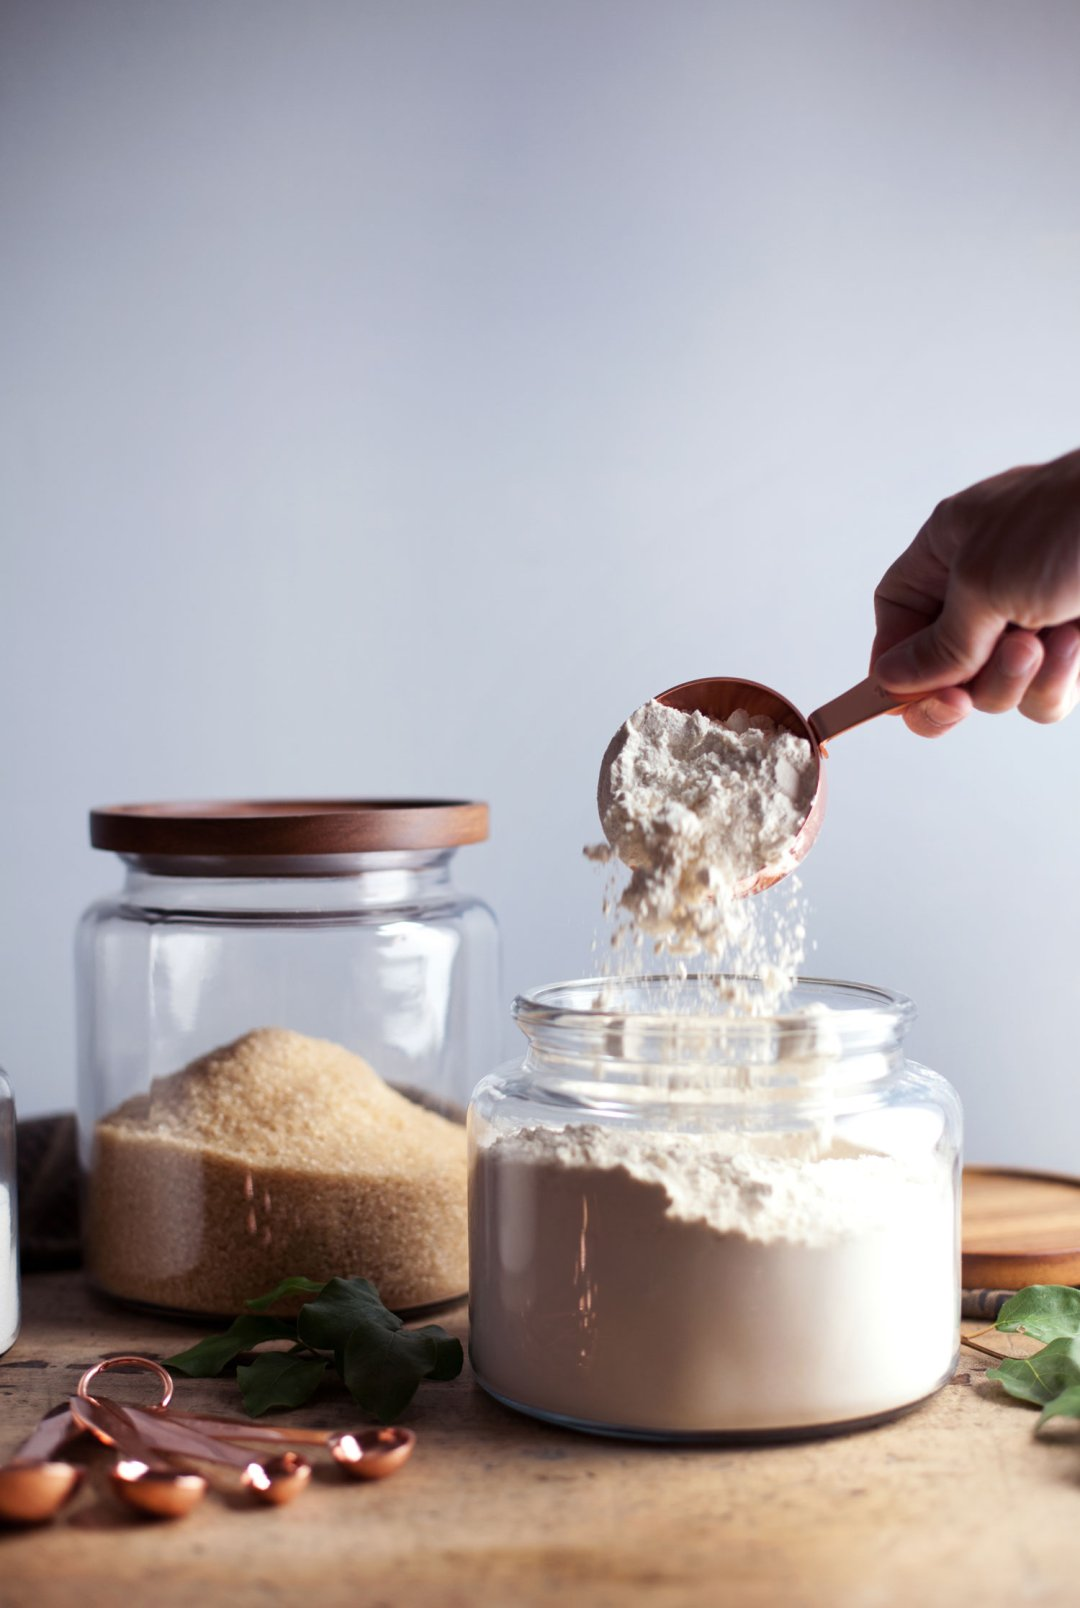 Scooping flour from a jar with a copper measuring cup